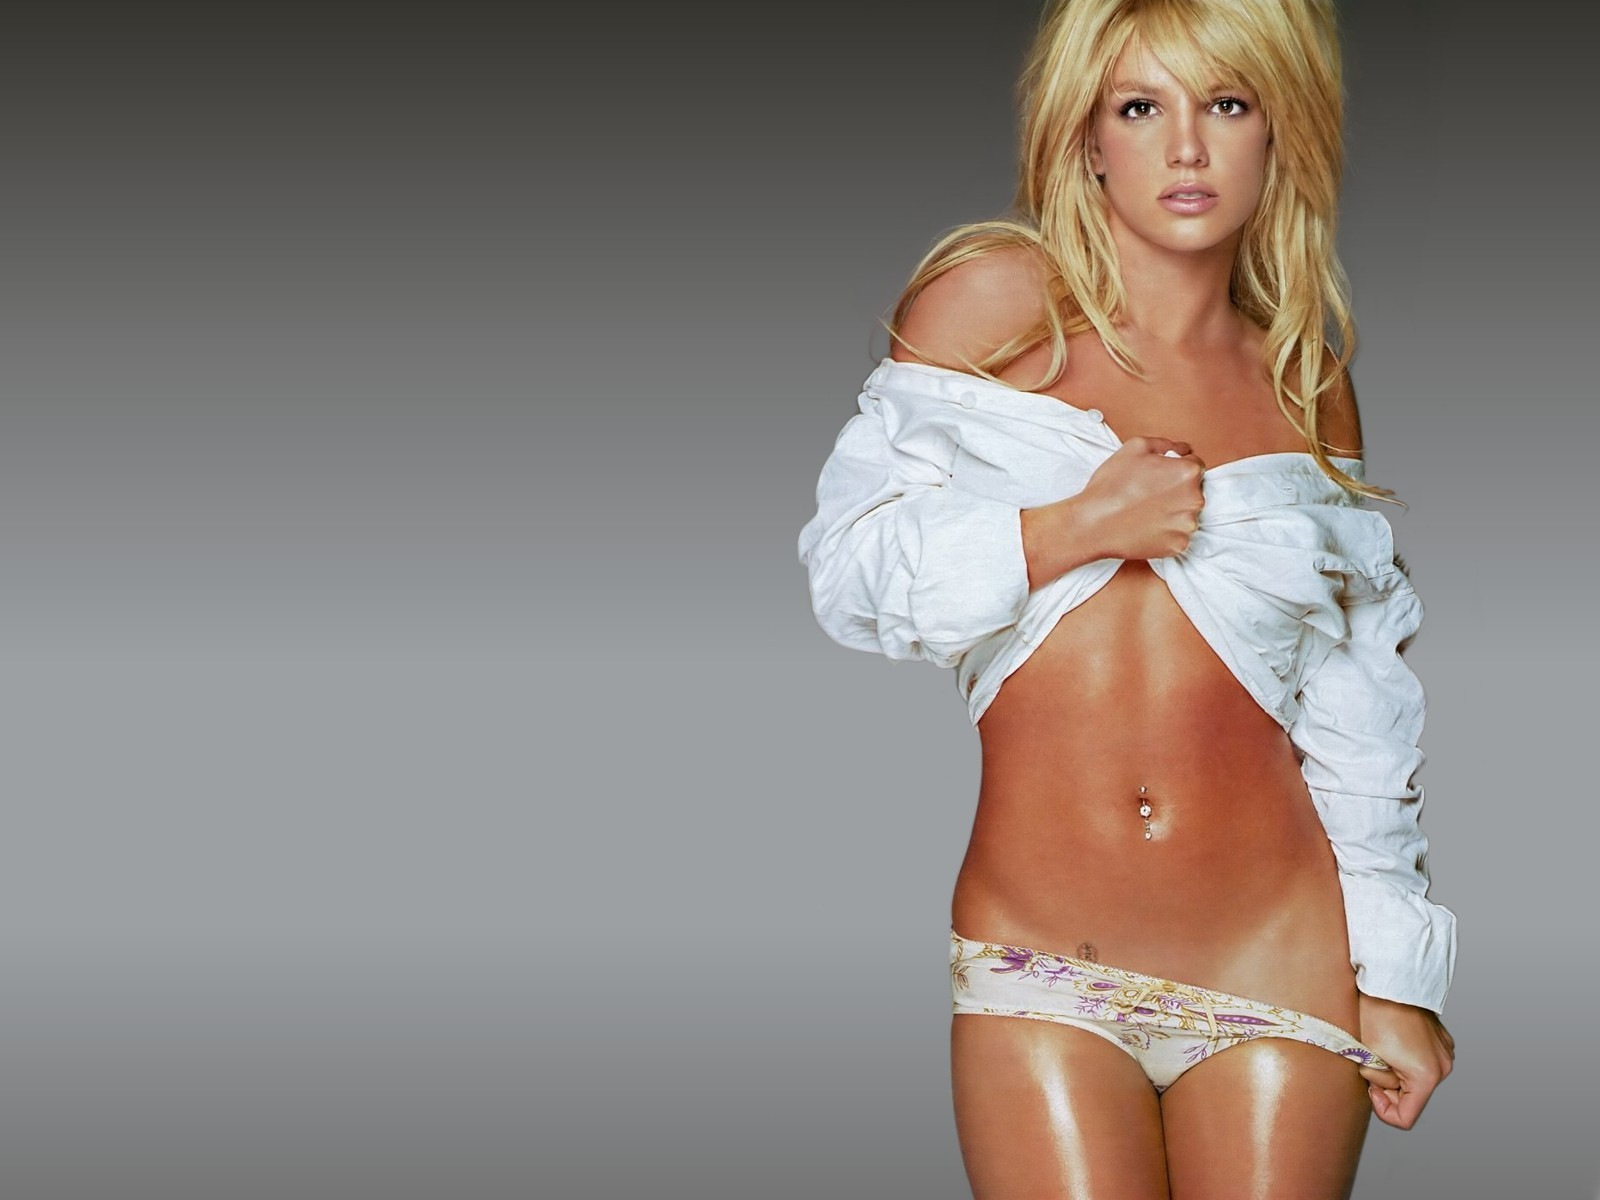 Britney Spears Sey Wallpaper